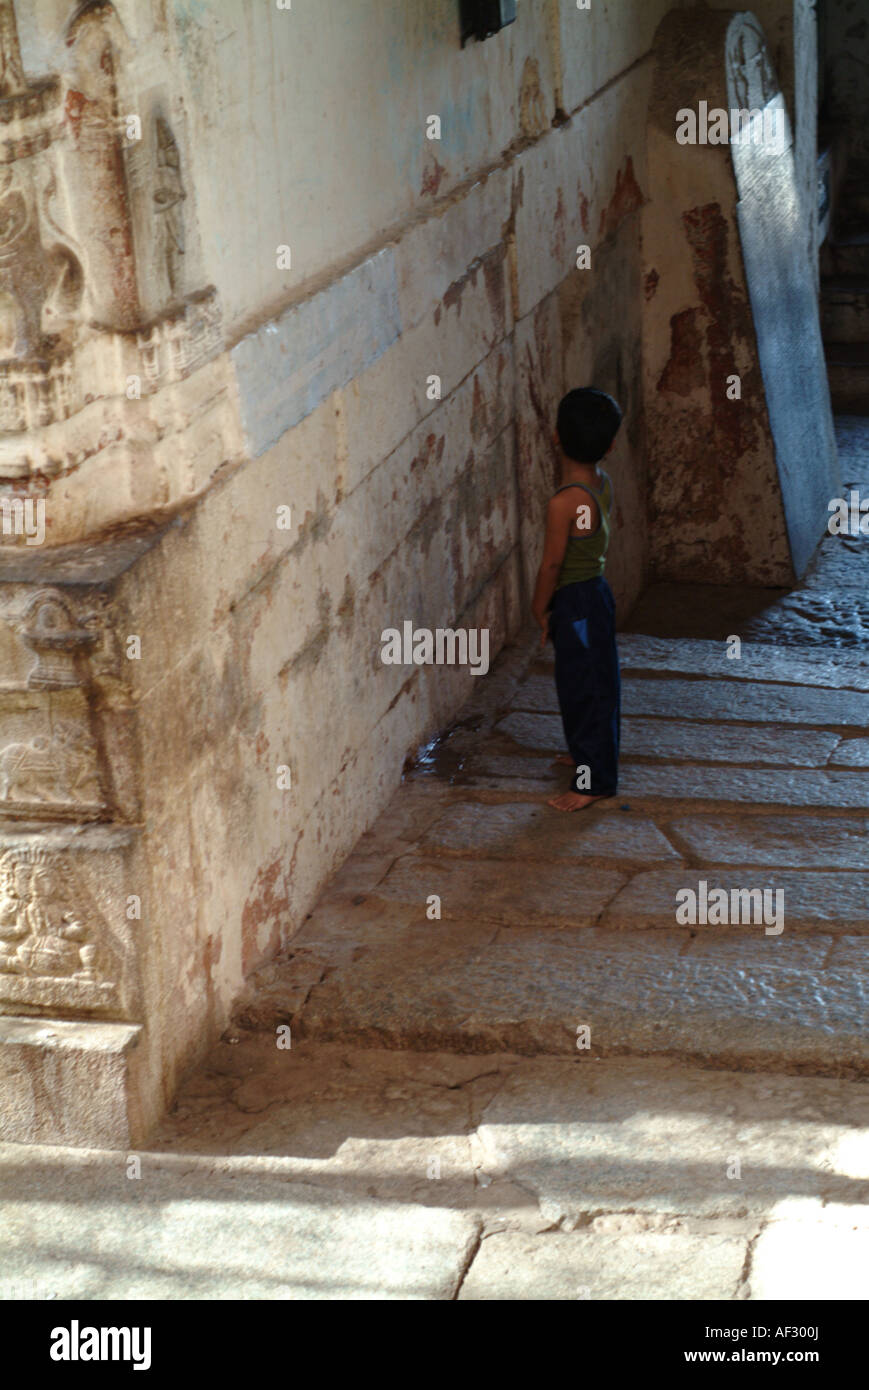 India child Pissing A young Indian boy takes a pee in the Temple in Hampi, Karnataka, Southern  India.